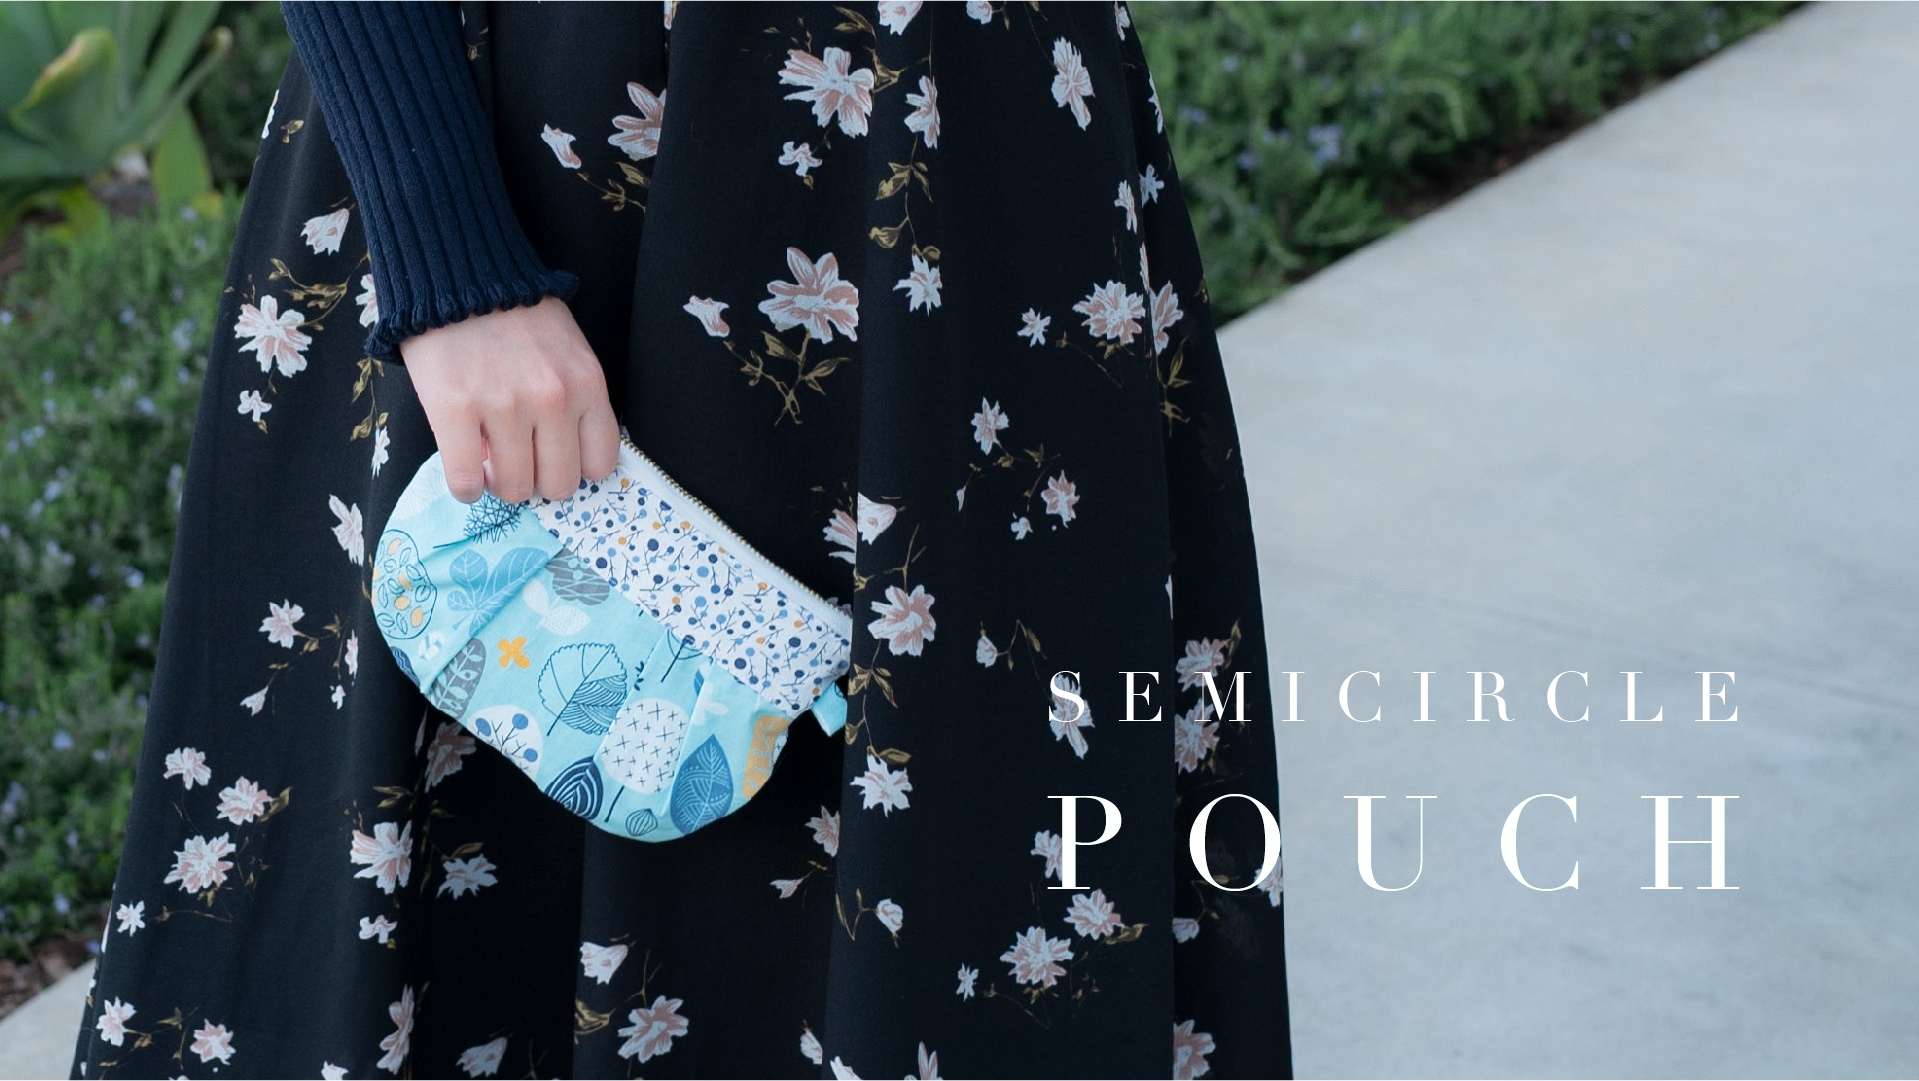 Semicircle Pouch